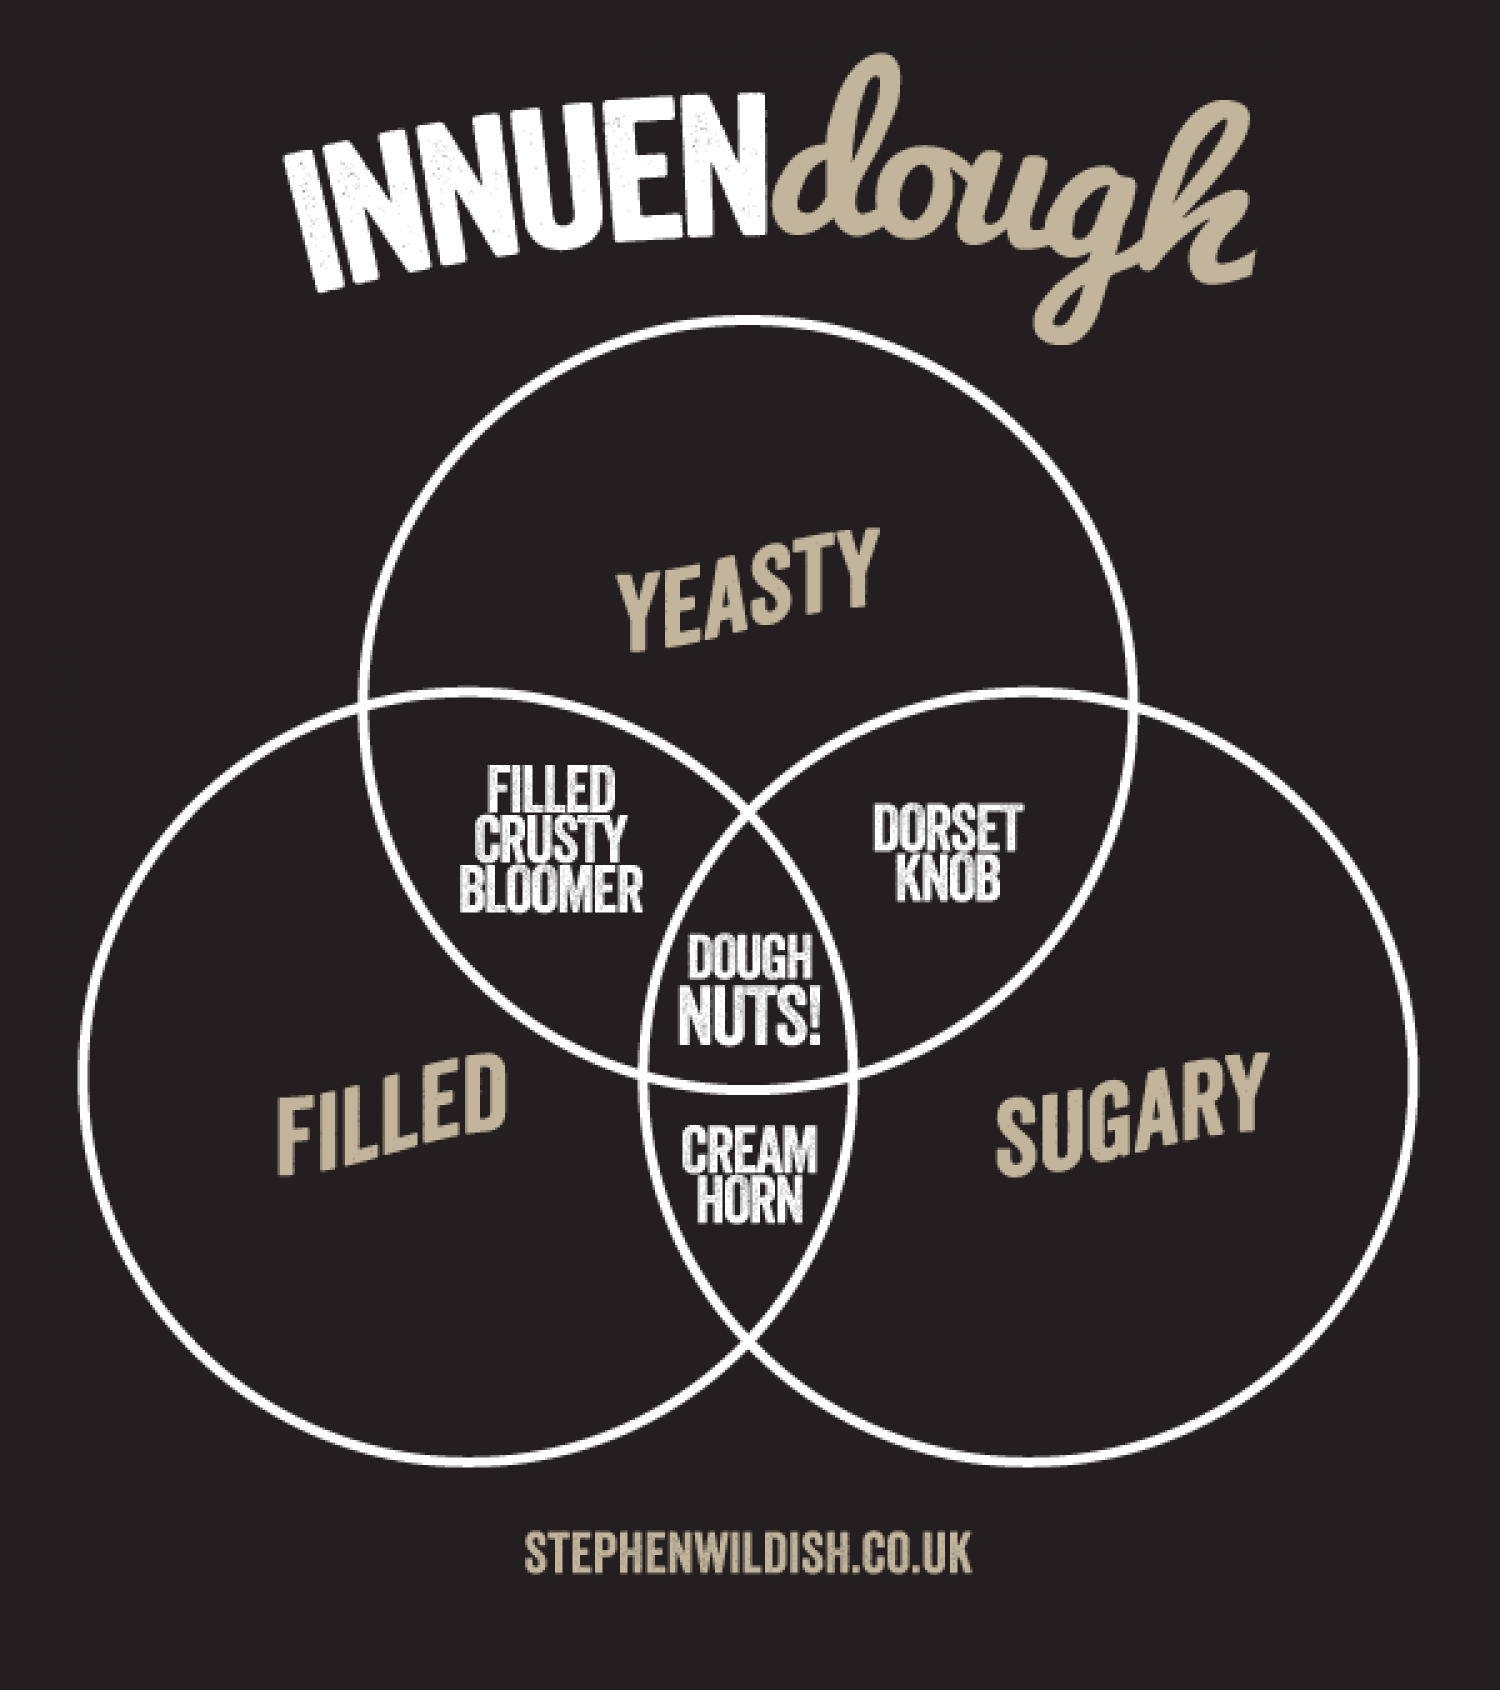 Innuendough Infographic